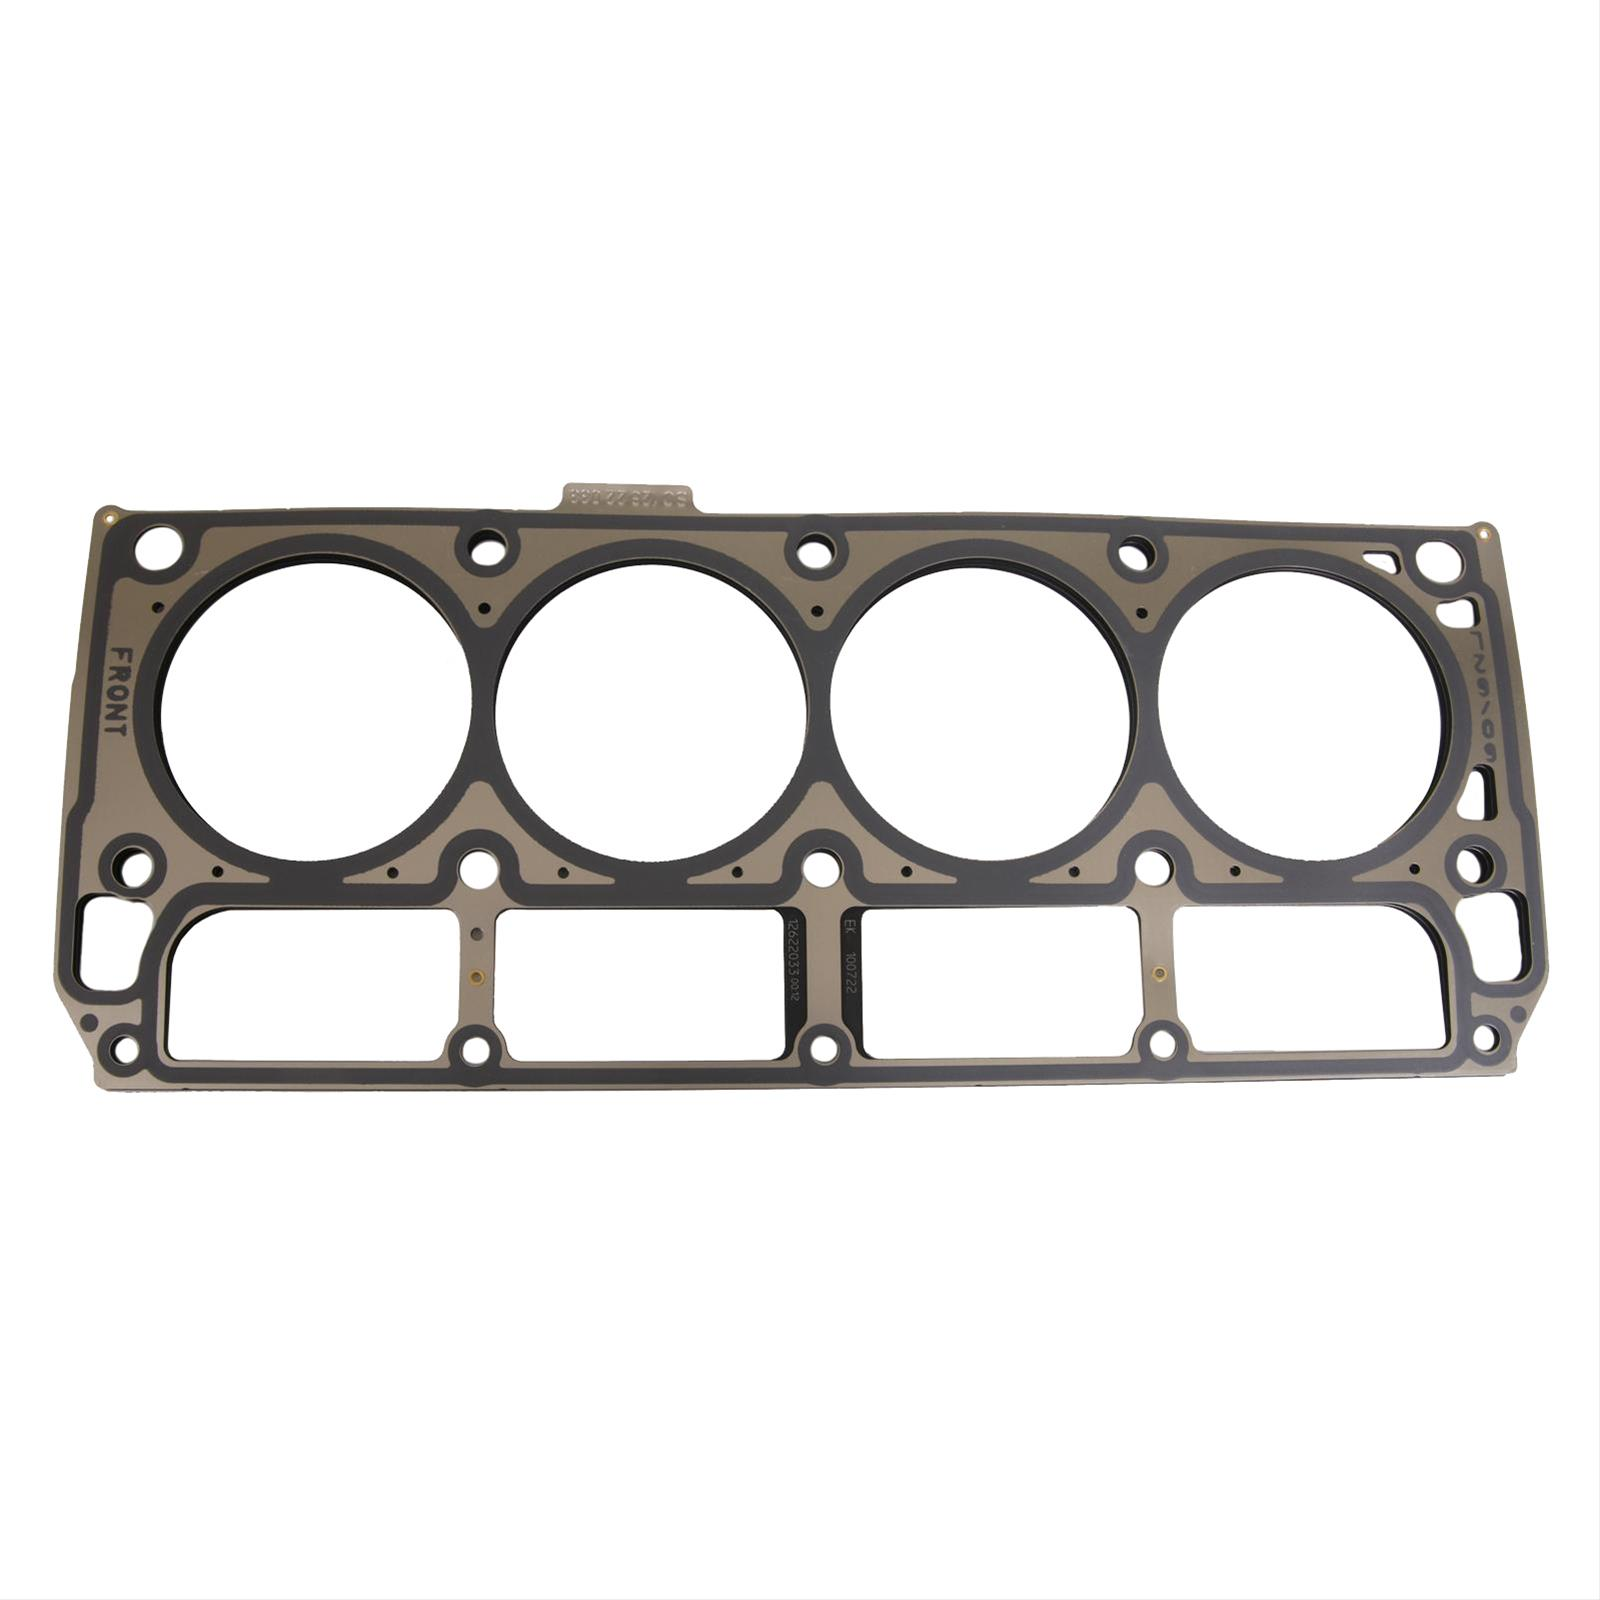 Chevrolet Performance Composition Head Gaskets 12622033 - Free ...